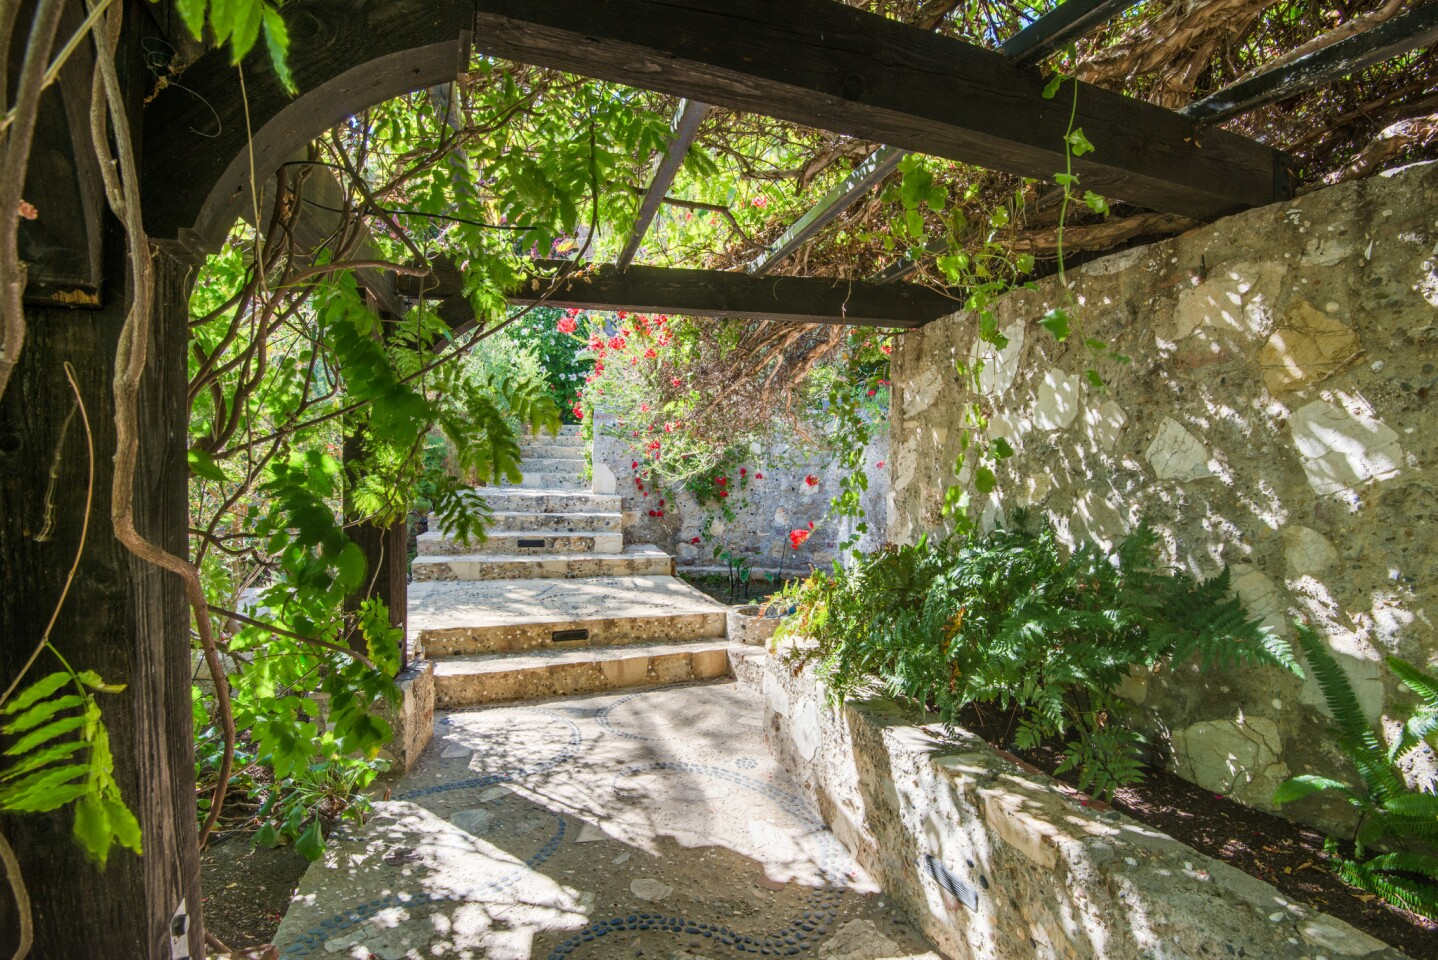 Home of the Day: Provincial inspiration in scenic Topanga